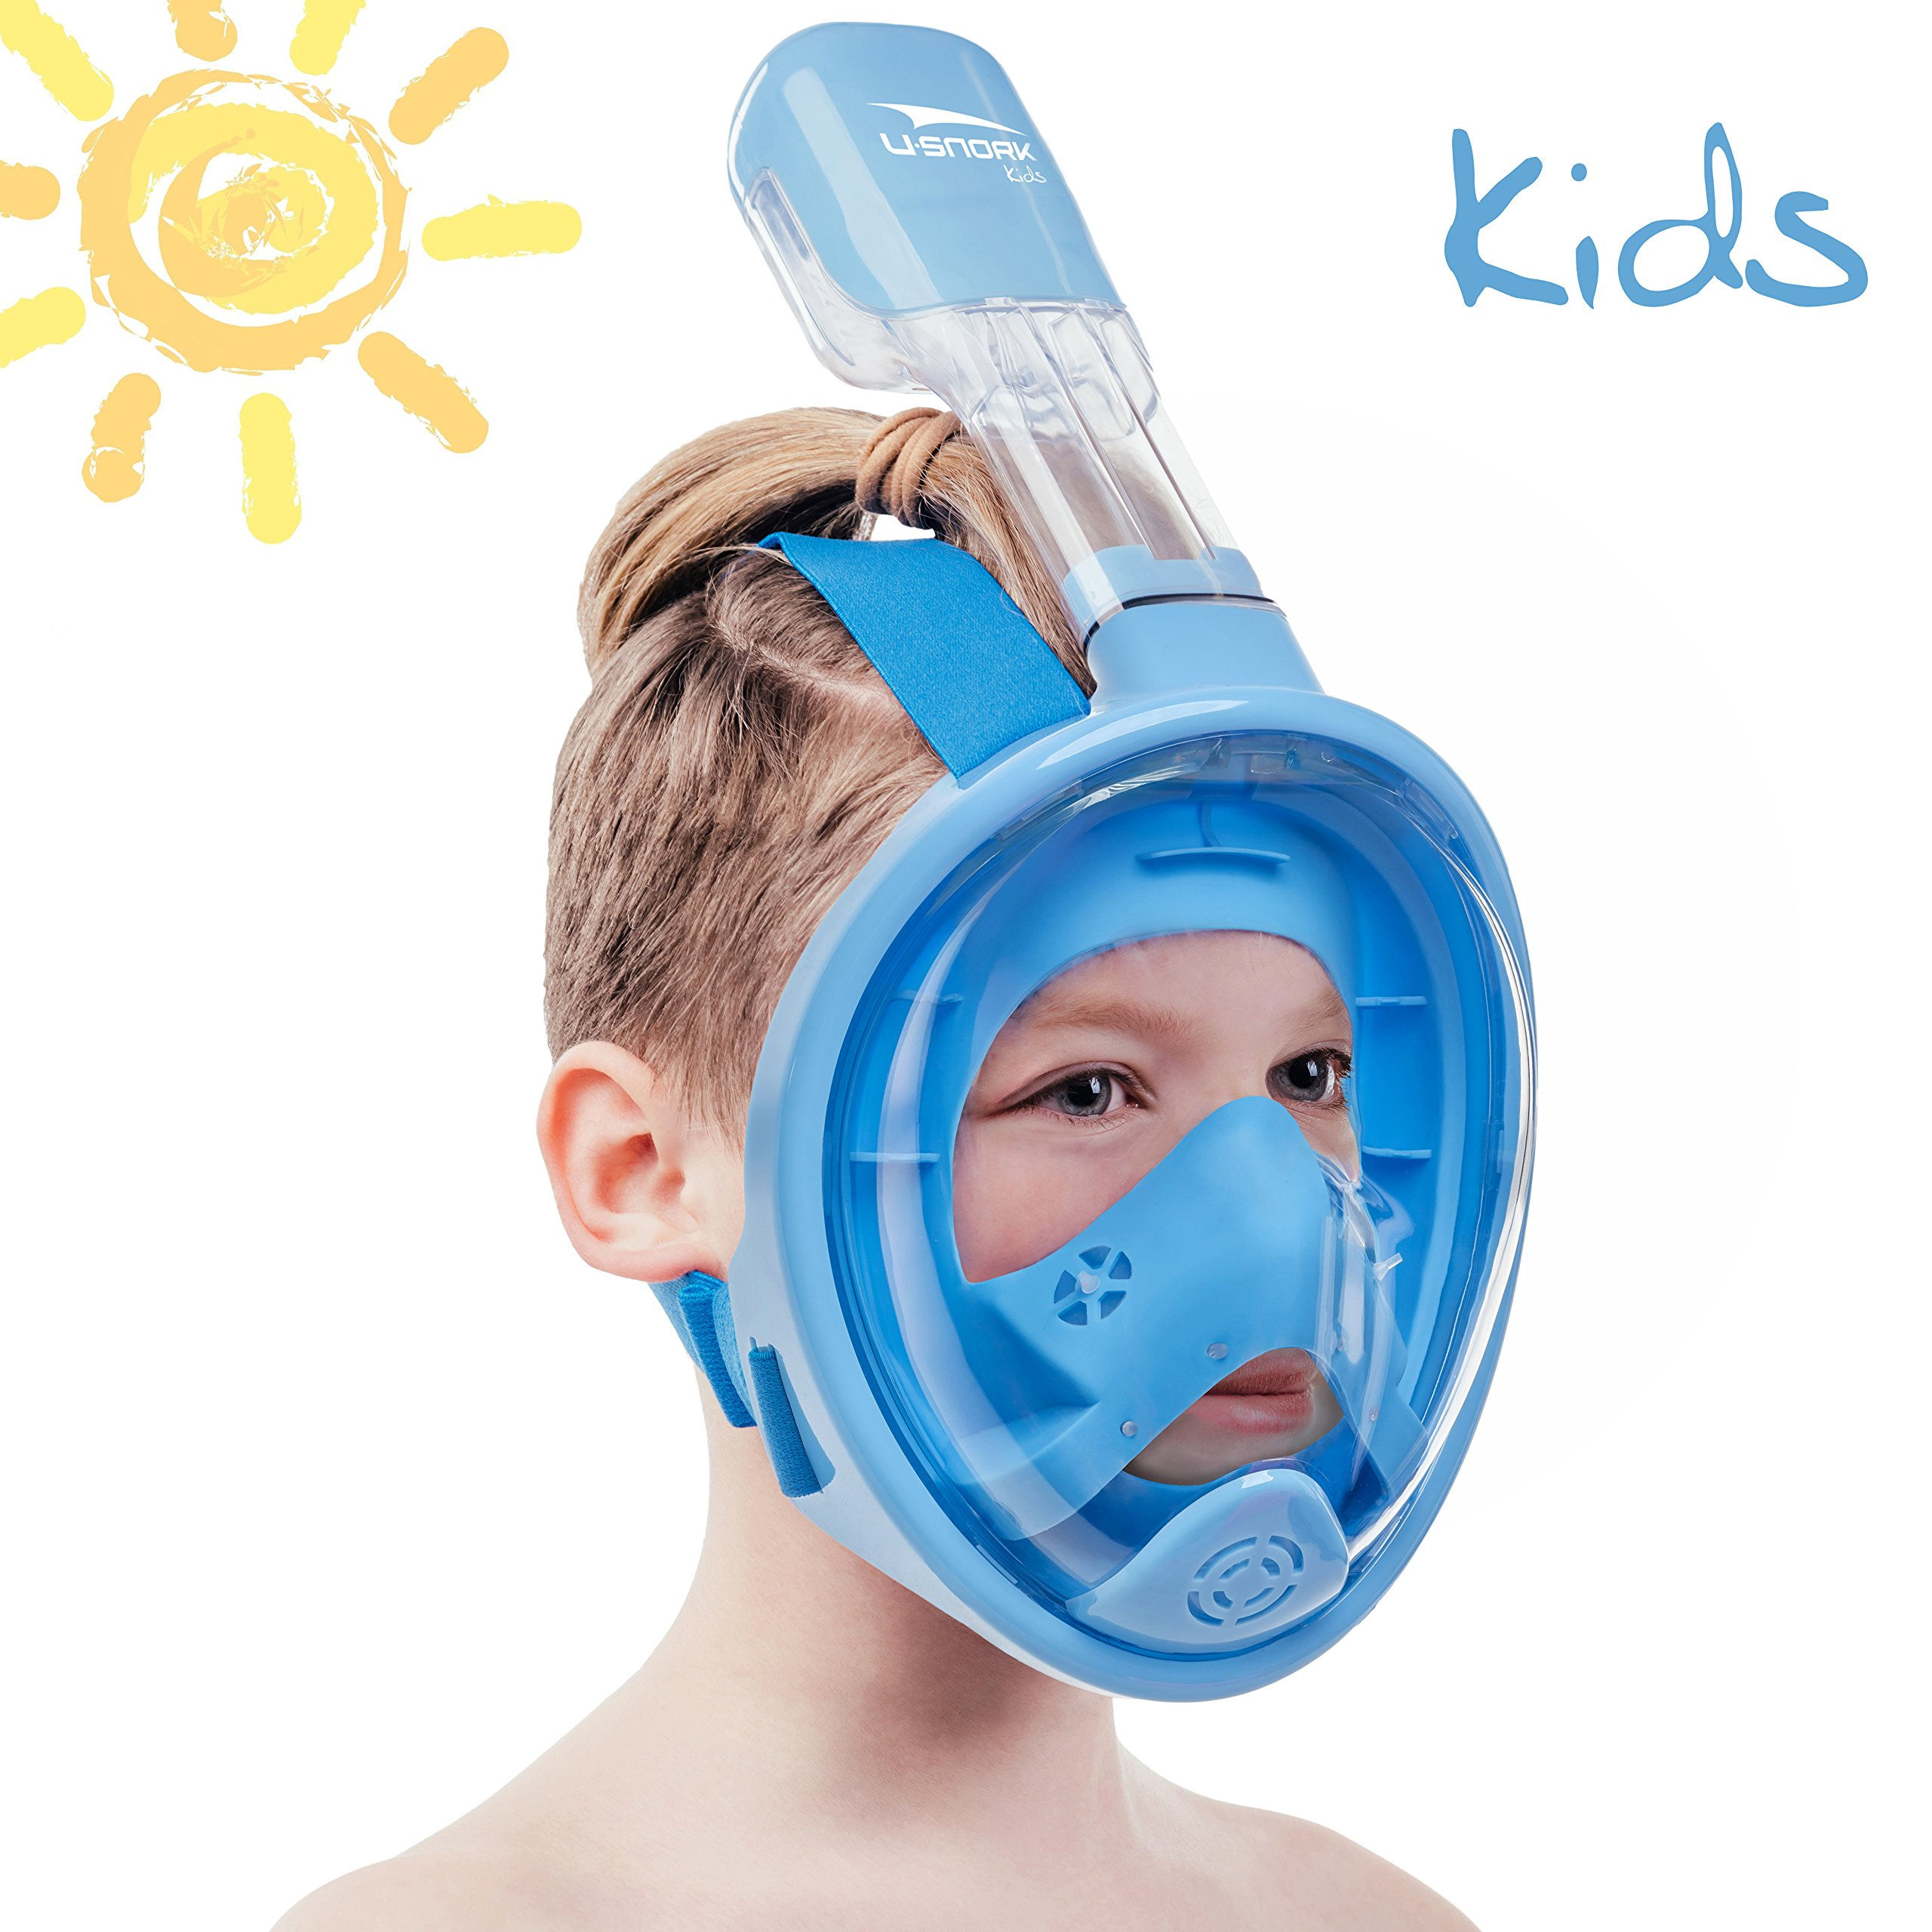 Usnork [SAFETY UPGRADE] Full Face Snorkel Mask, Easybreath Snorkeling Gear, Anti-Fog and Anti-Leak Snorkel Set, Scuba Mask with 180 Panoramic View + GIFT Towel Included (Blue Kids, X-Small) by Usnork